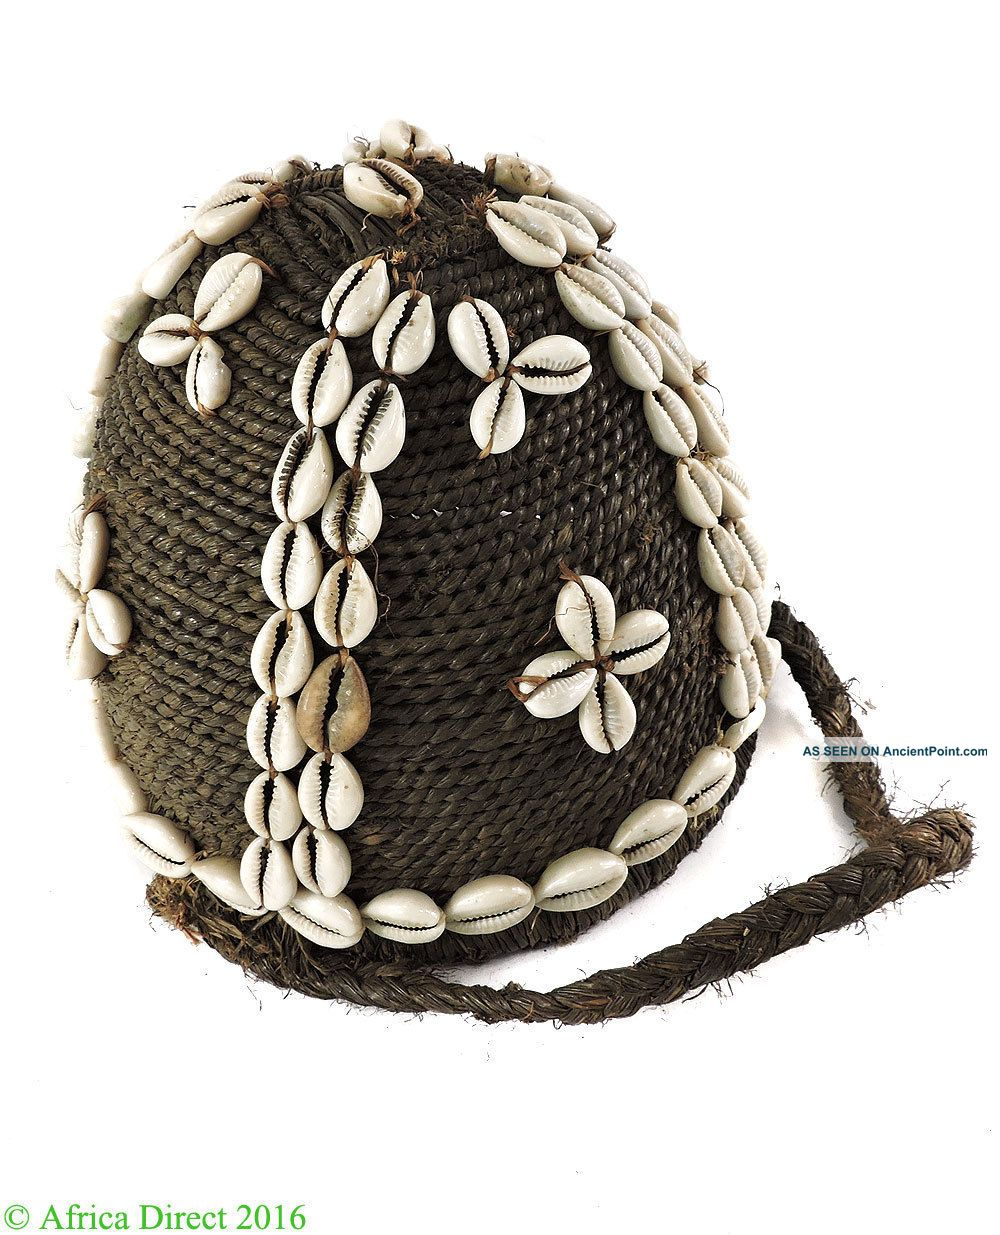 Lega Bwami Hat With Cowrie Shells Congo African Art Was $99 Other African Antiques photo